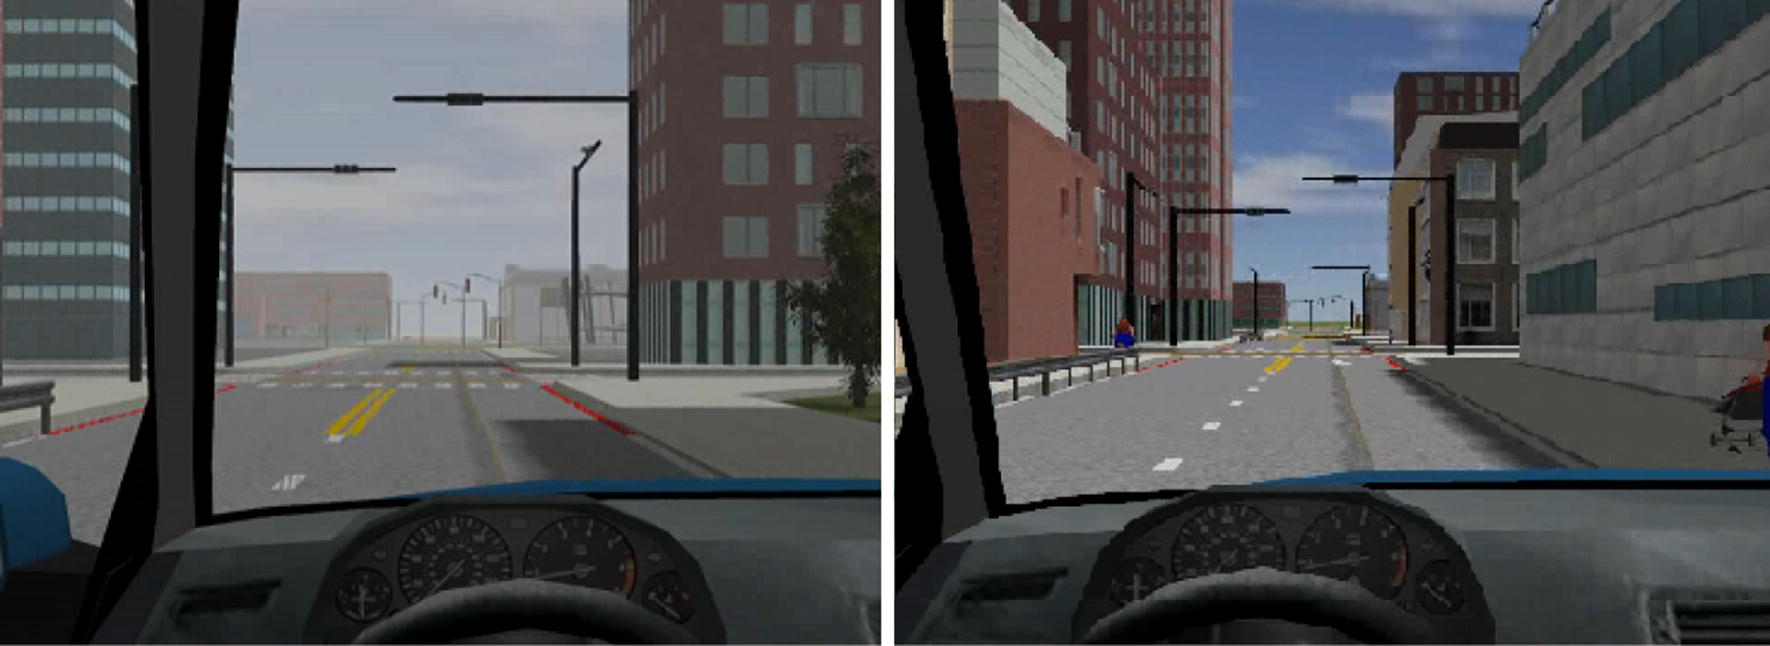 Simulation and application of cooperative driving sense systems